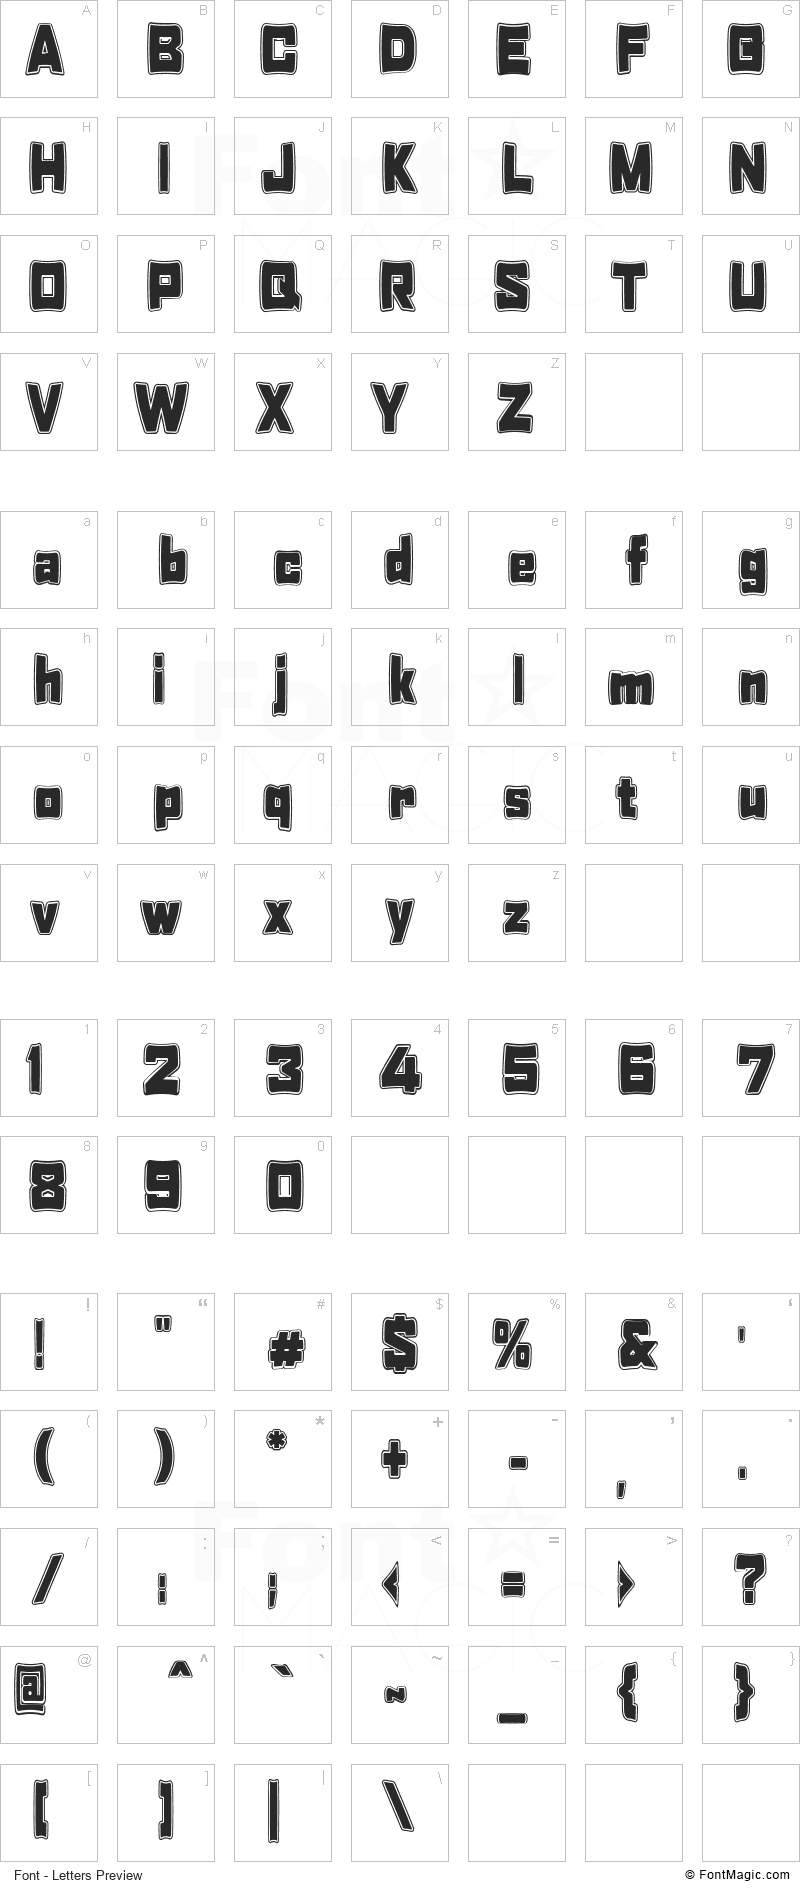 Tabaquera Font - All Latters Preview Chart